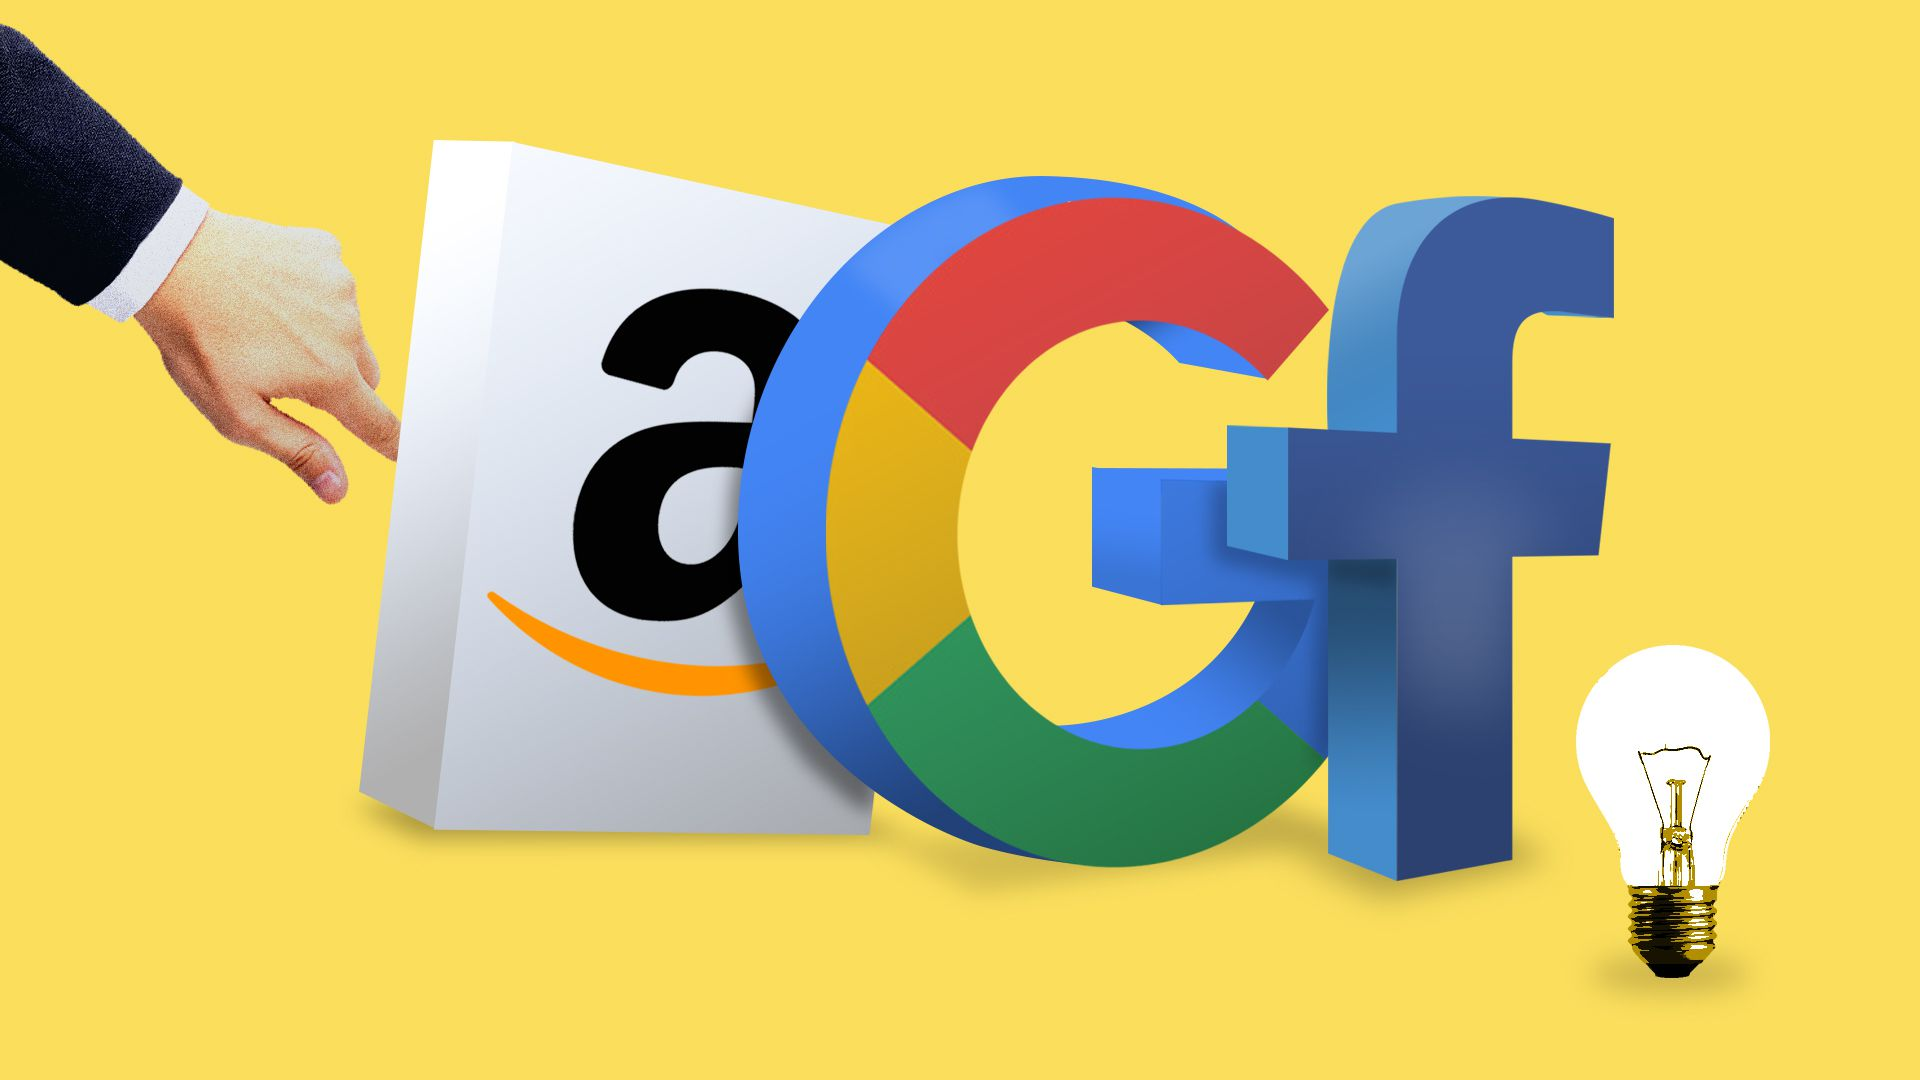 In this image, the Amazon, Google, and Facebook logos are portrayed